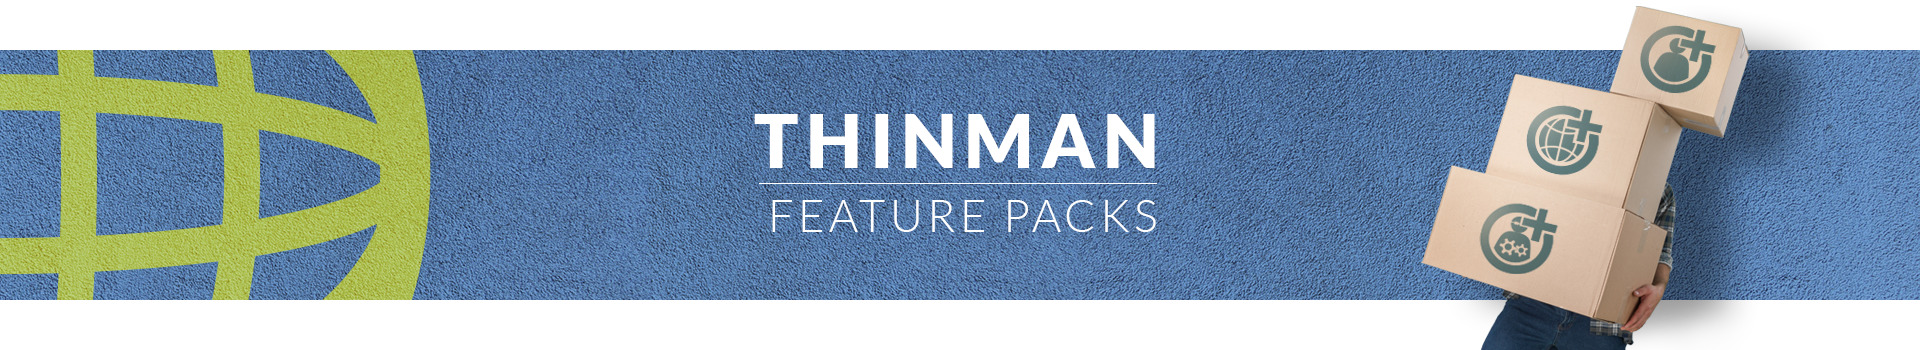 ThinMan Feature Packs